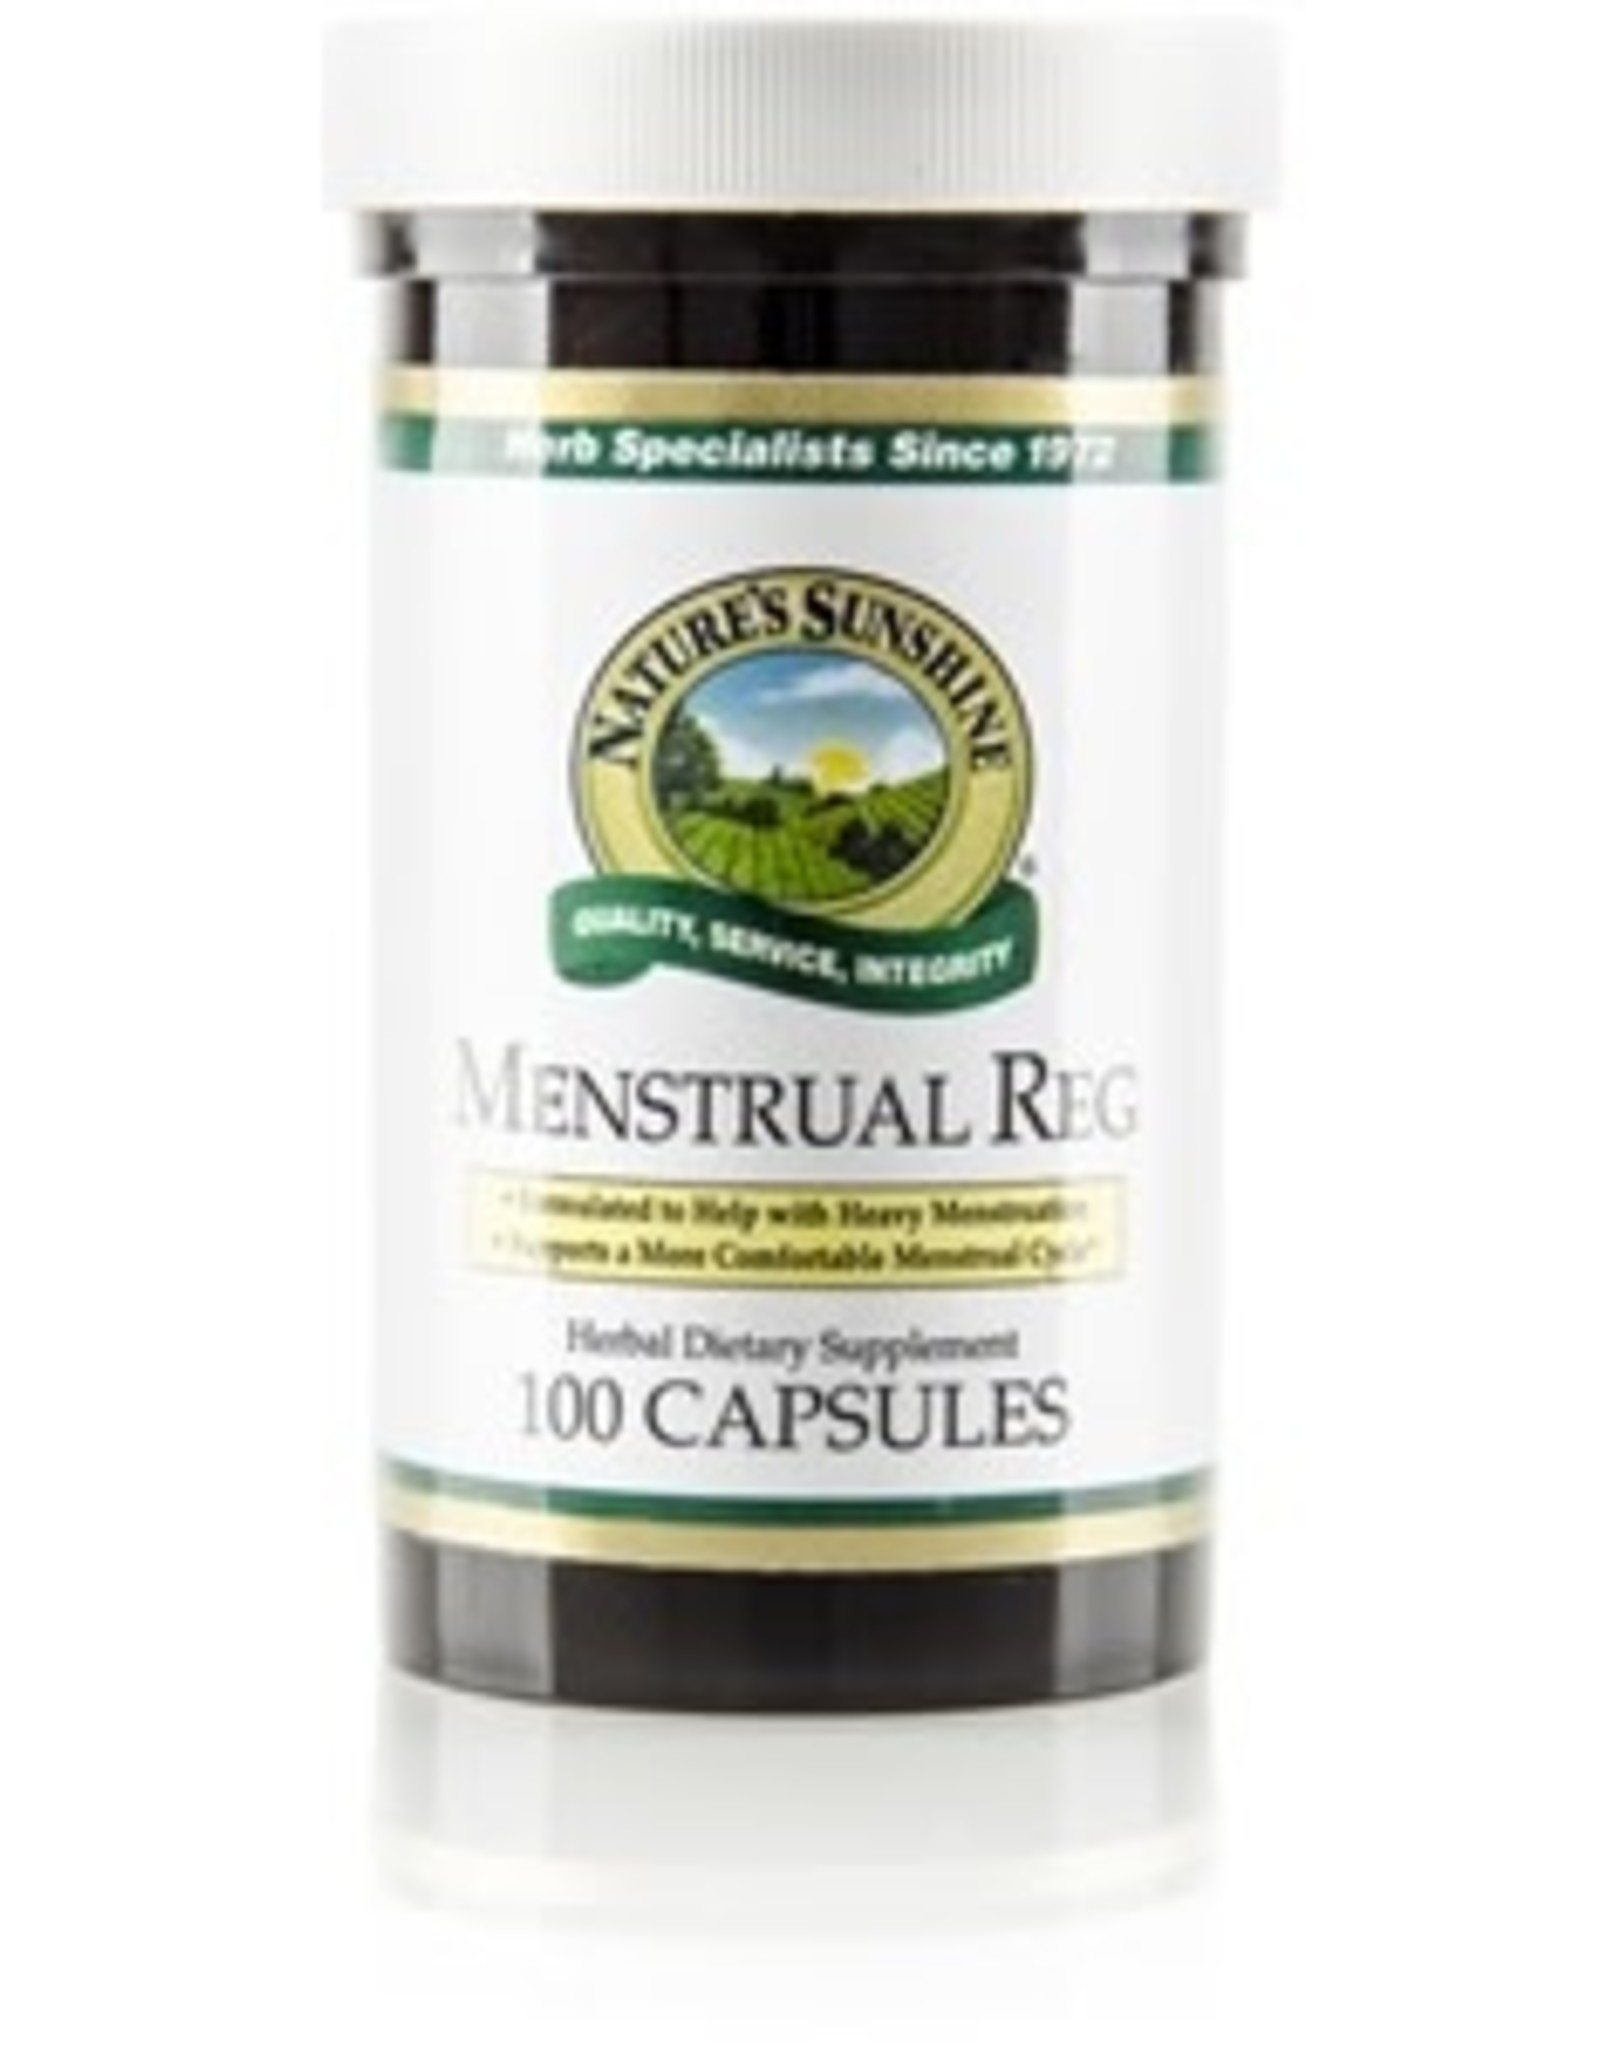 Nature's Sunshine Menstrual Reg (100 caps)